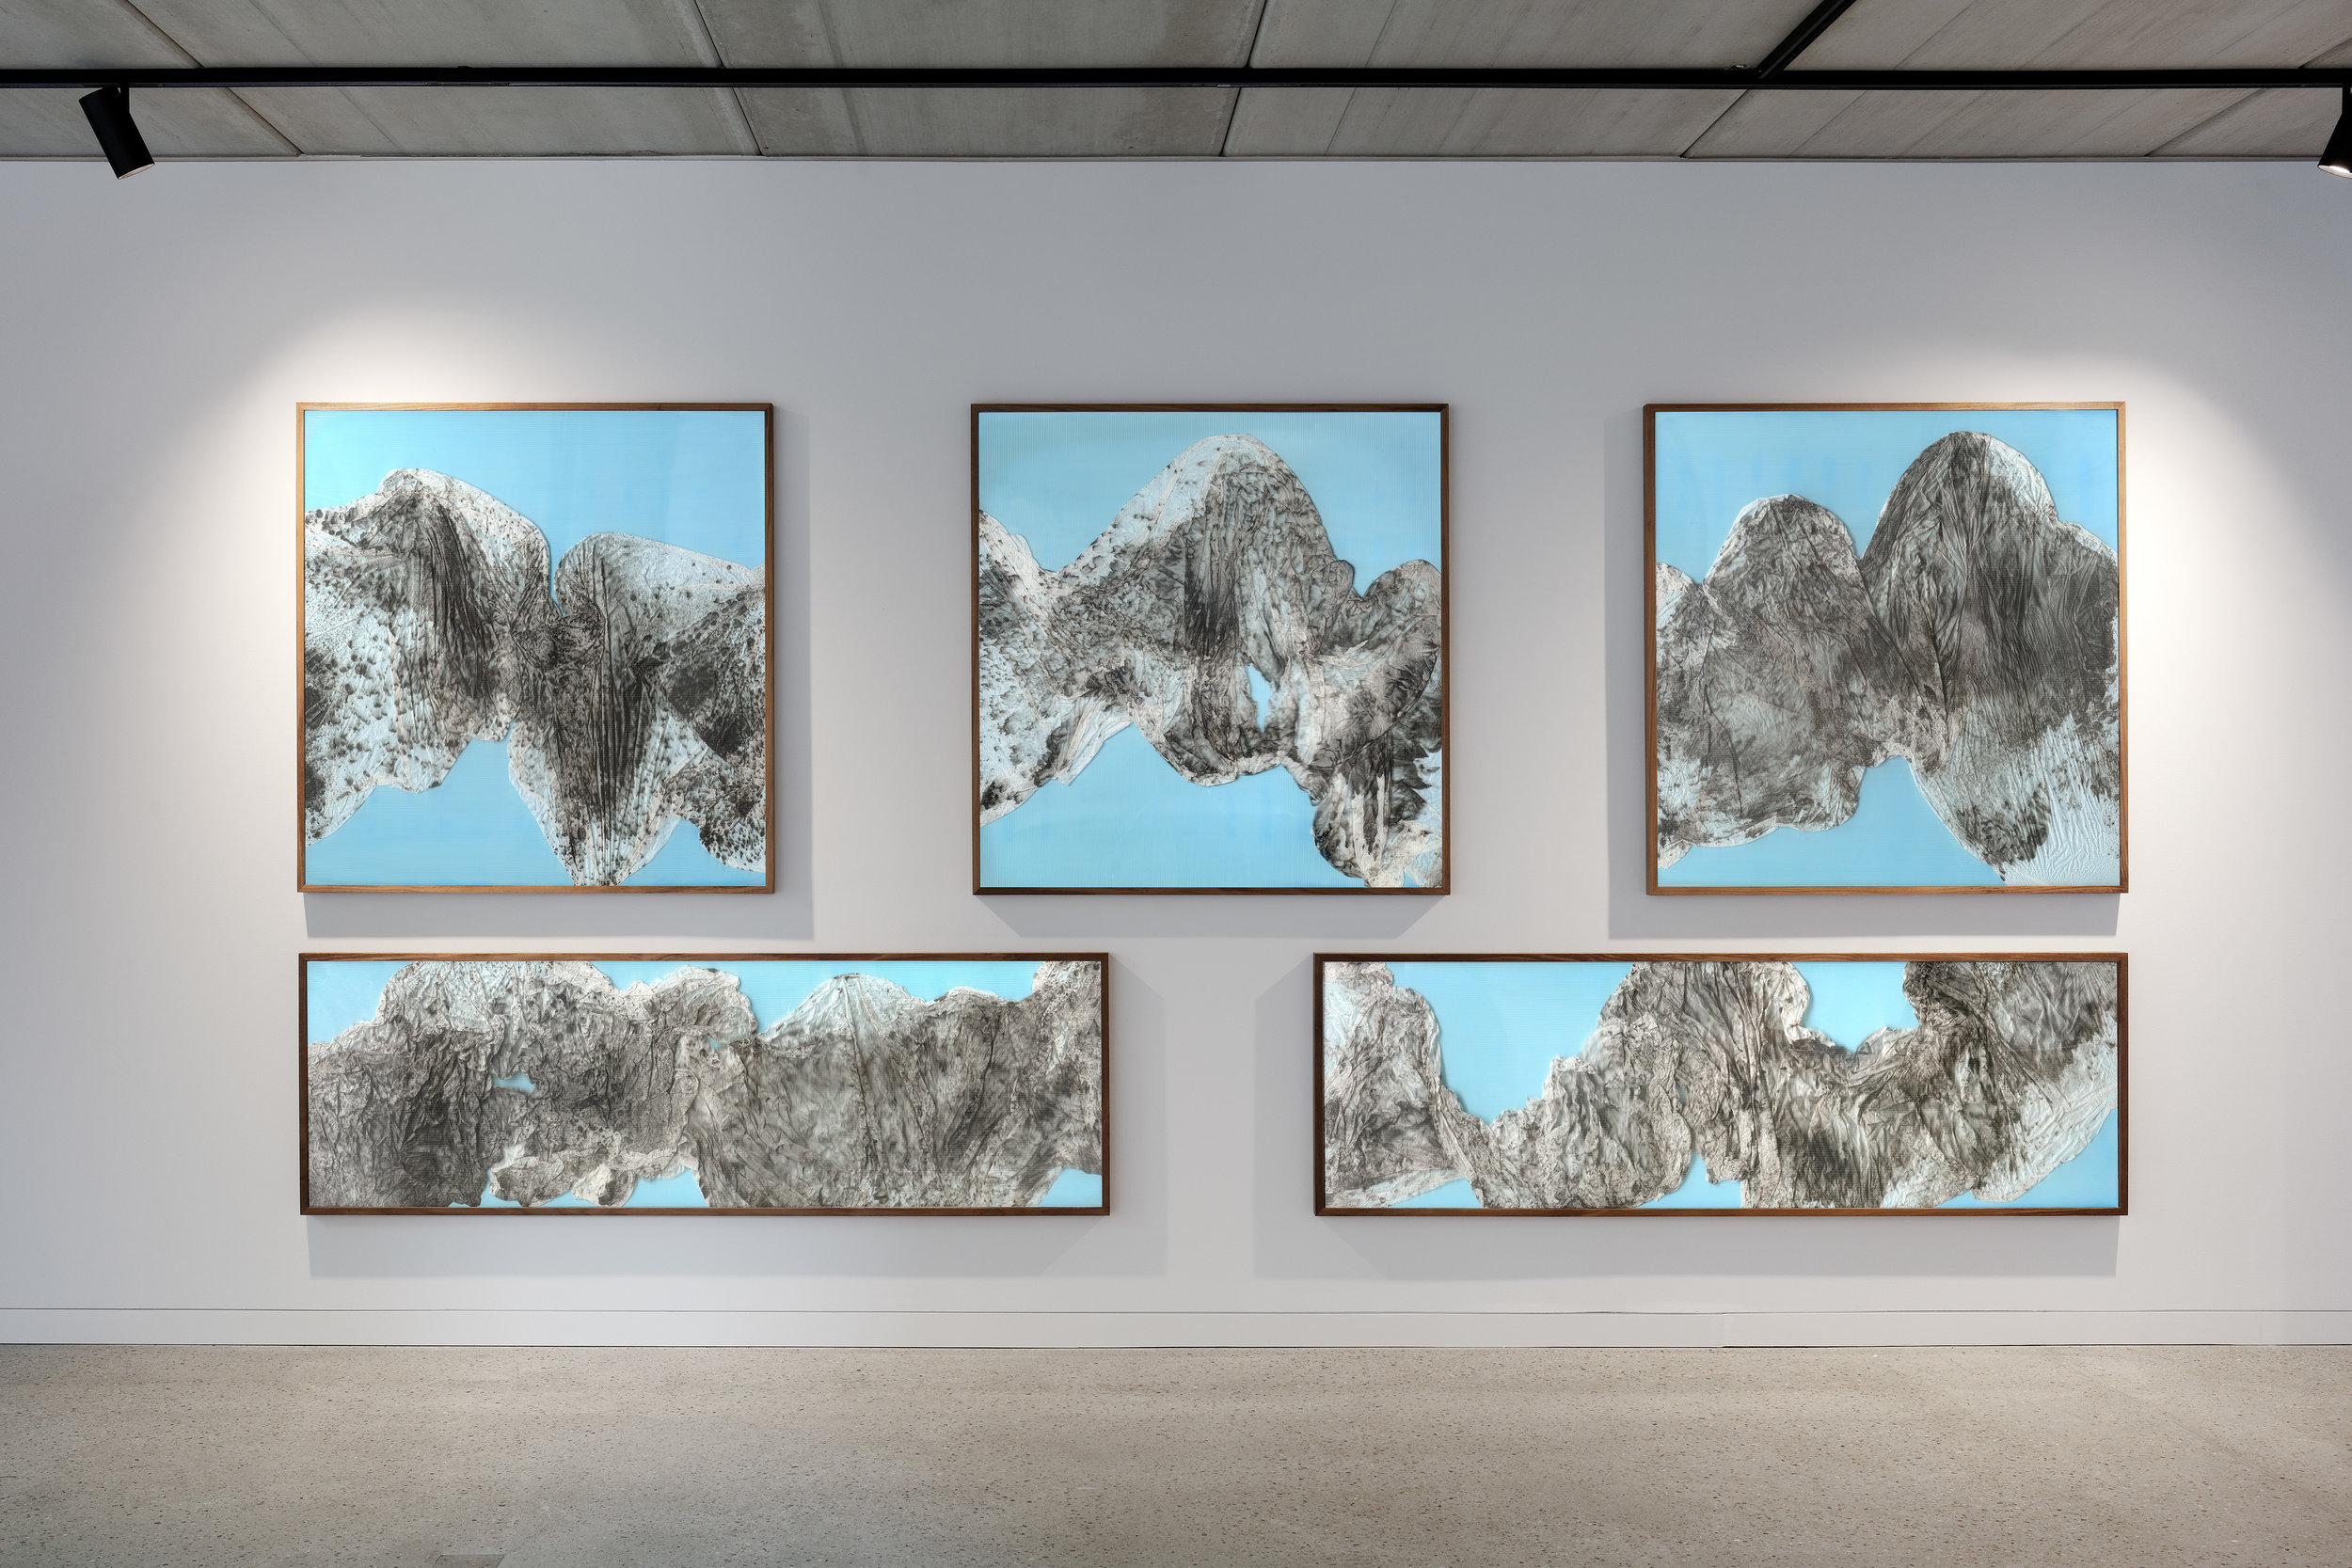 Remembrance of Realms Past / Part I, II, III, IV, V,  2018 - Installation view Calligraphy ink on Xuan paper, Poly Film beneath linear Plexiglas 120 x 120 cm (47 x 47 in), 206 x 63 cm (81 x 25 in)